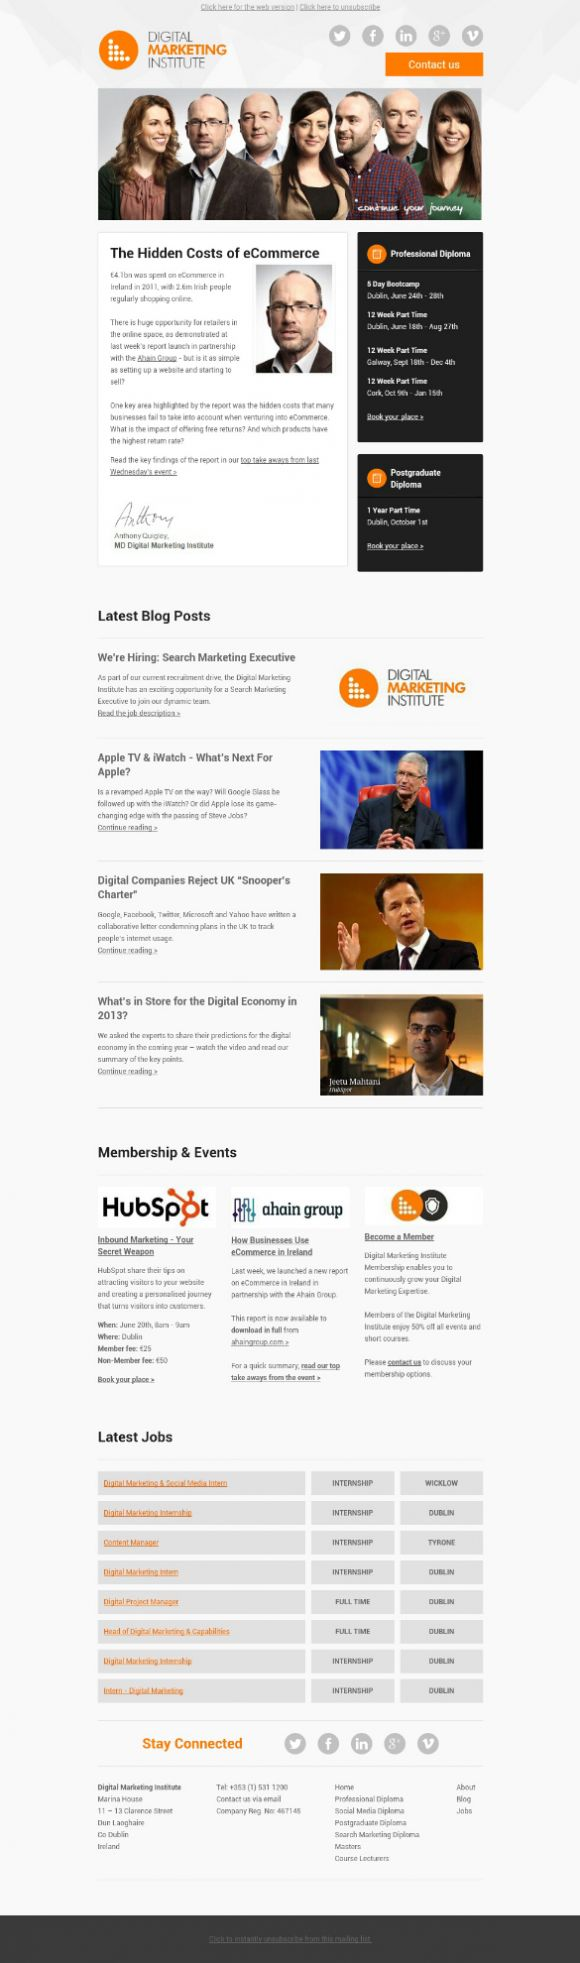 Beautiful Email Newsletters » Blog Archive The digital marketing institute » Beautiful Email Newsletters